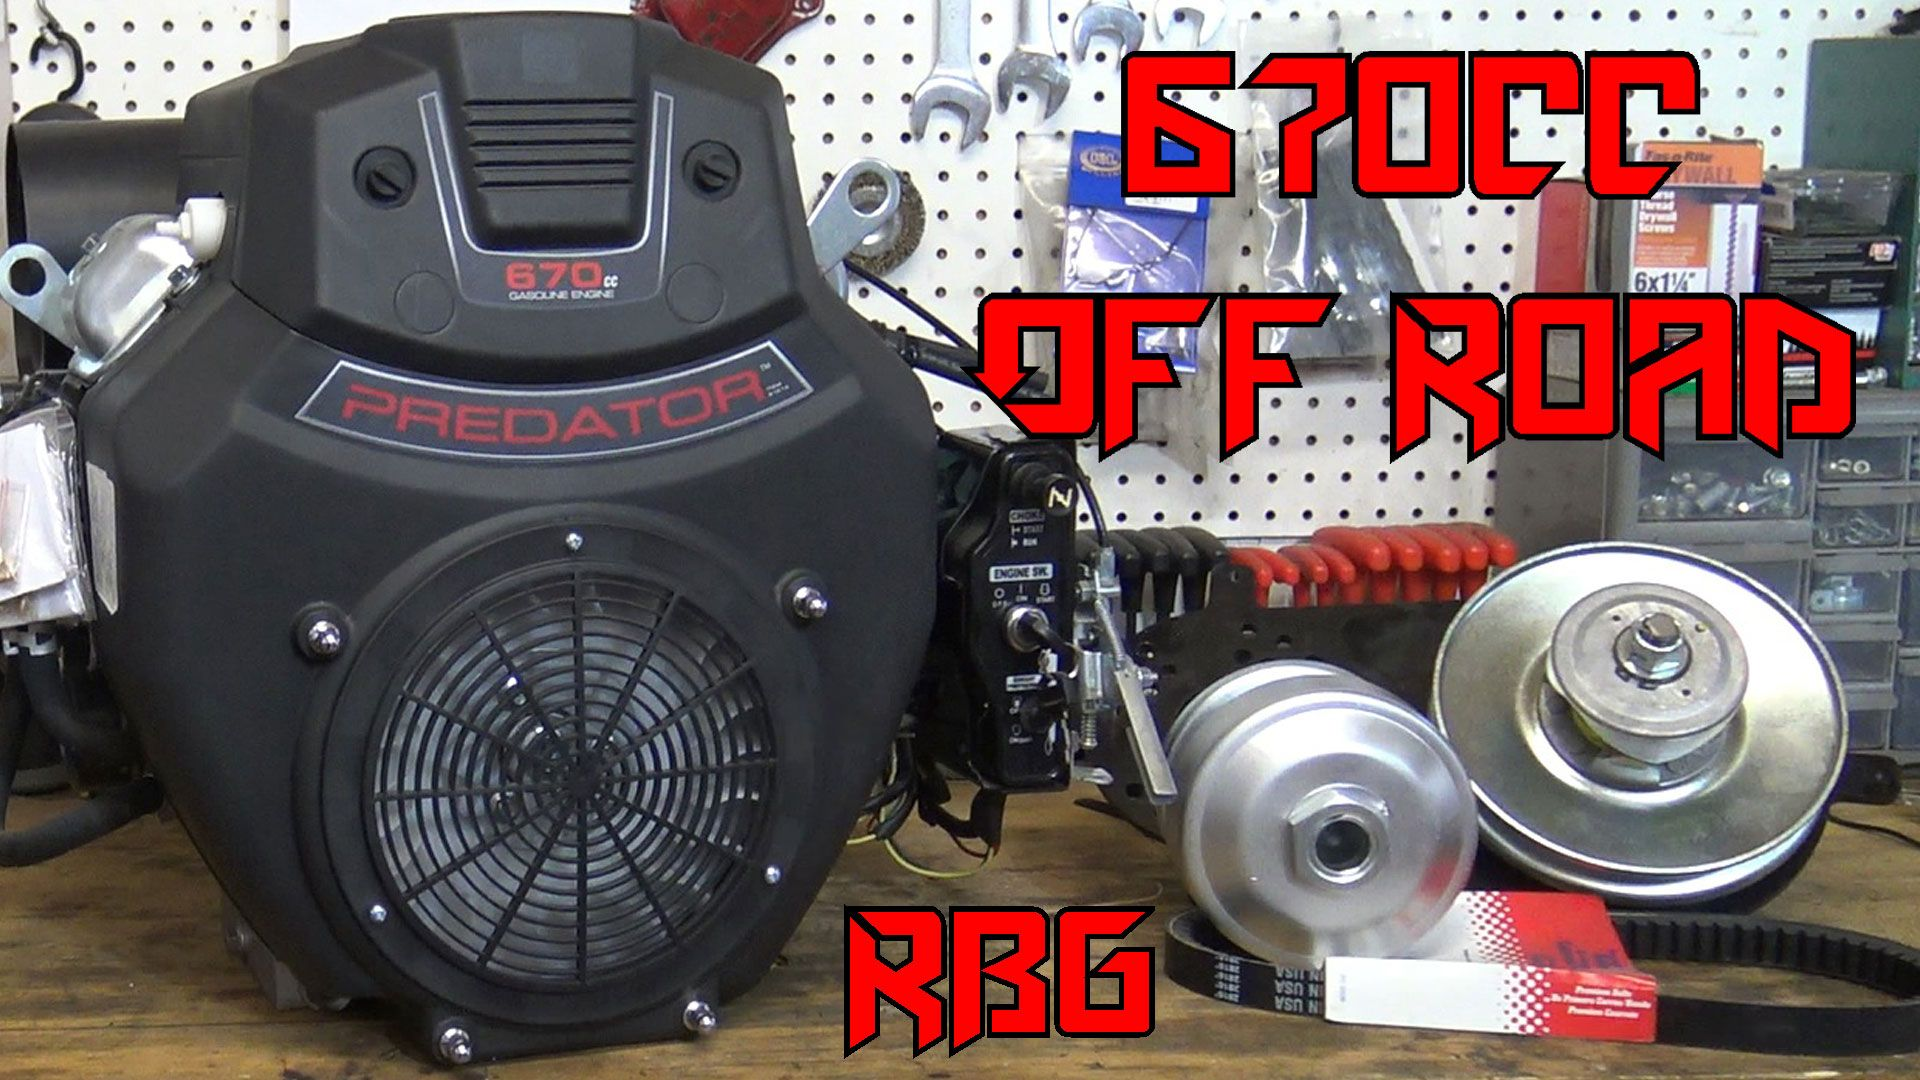 Red Beard S Garage Puts A 670cc On A Yerf Dog Kart Check It Out On Youtube Don T Forget To Subscribe Go Kart Predator Offroad